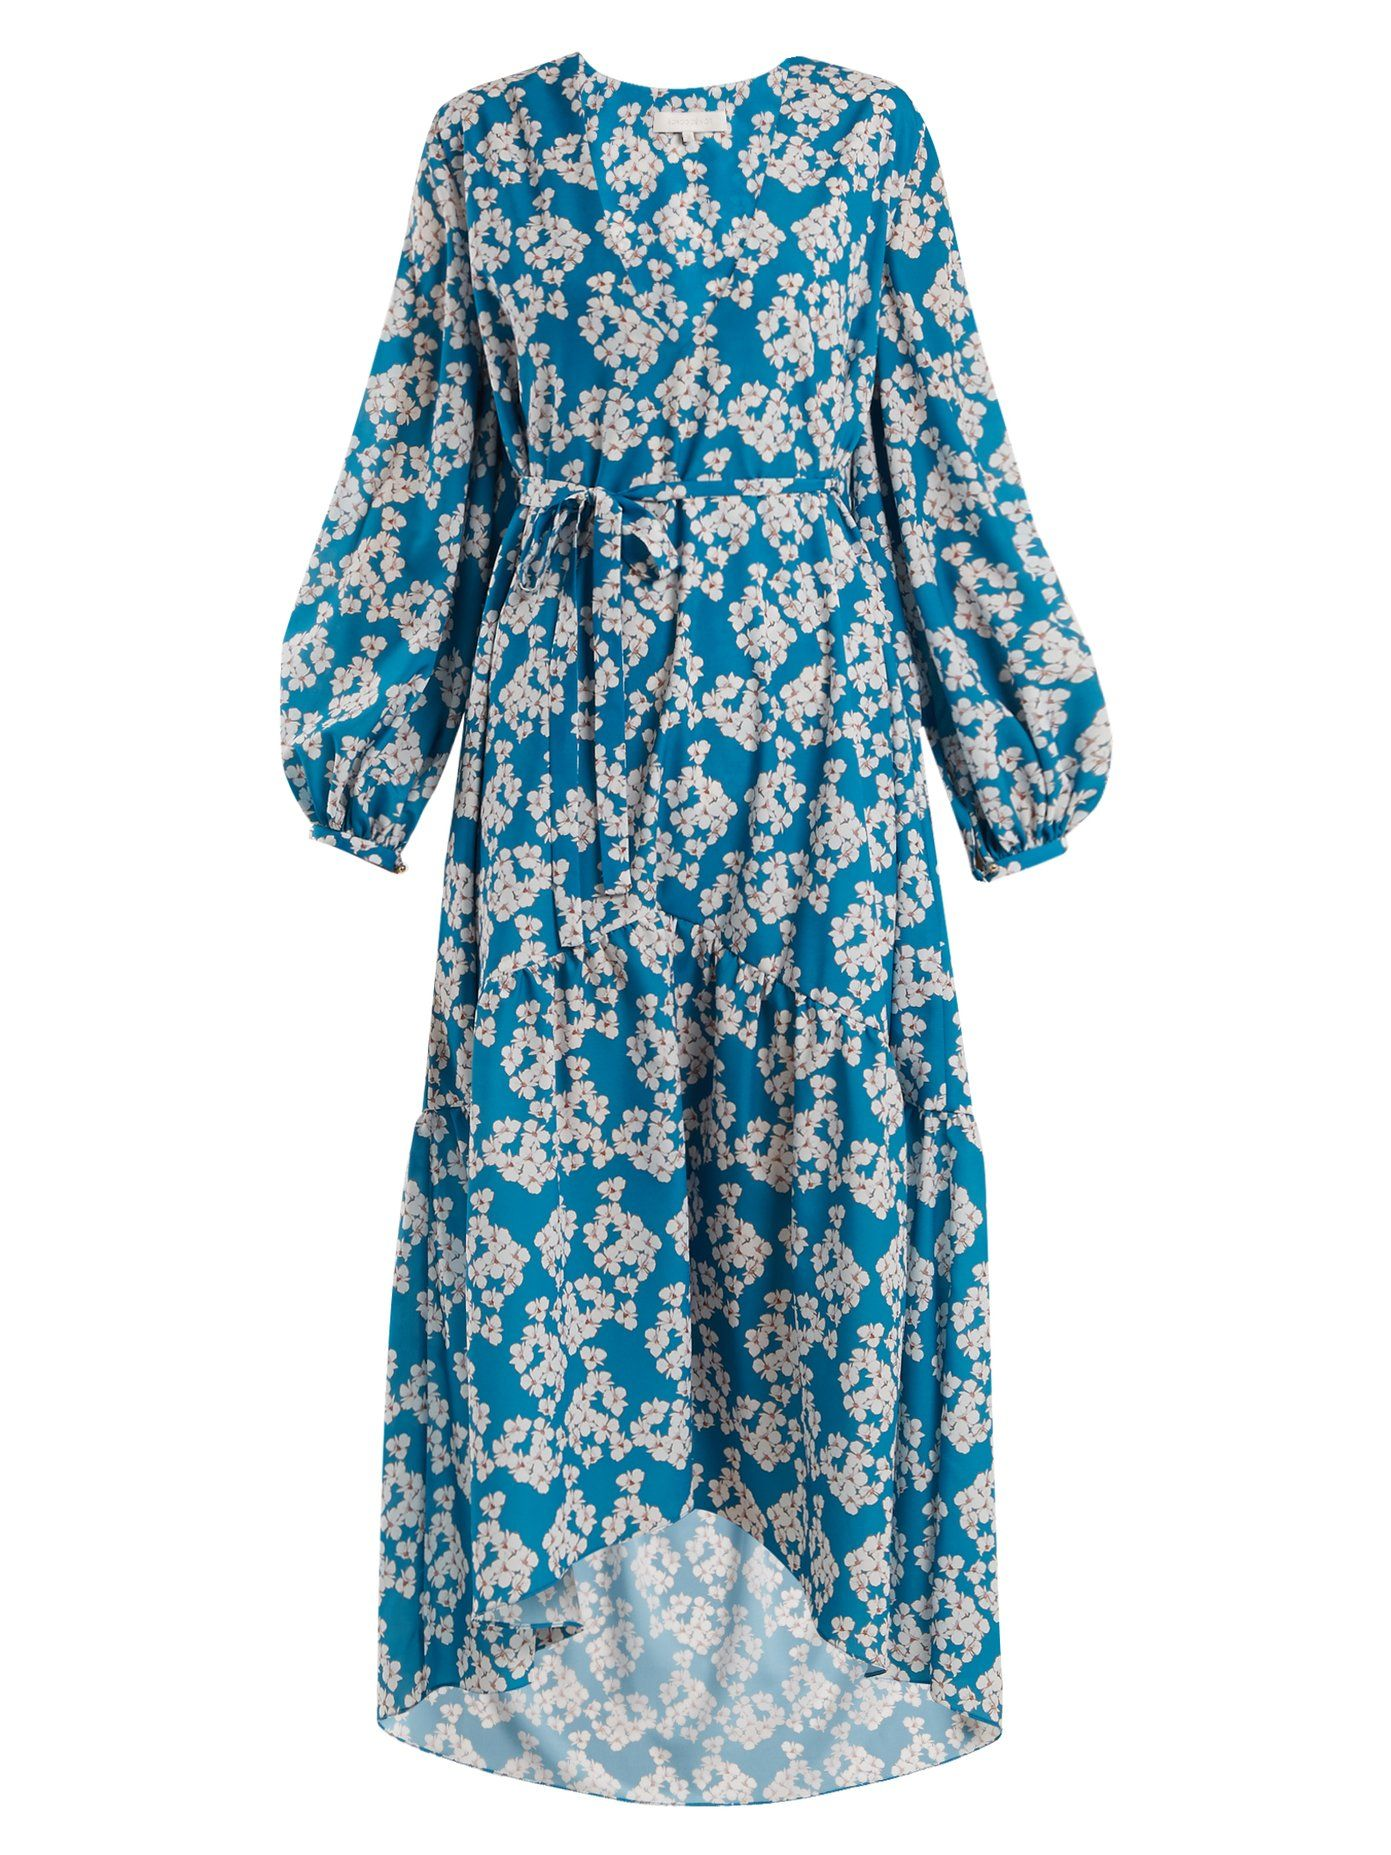 Beatrice Bouquet-print crepe dress Borgo De Nor